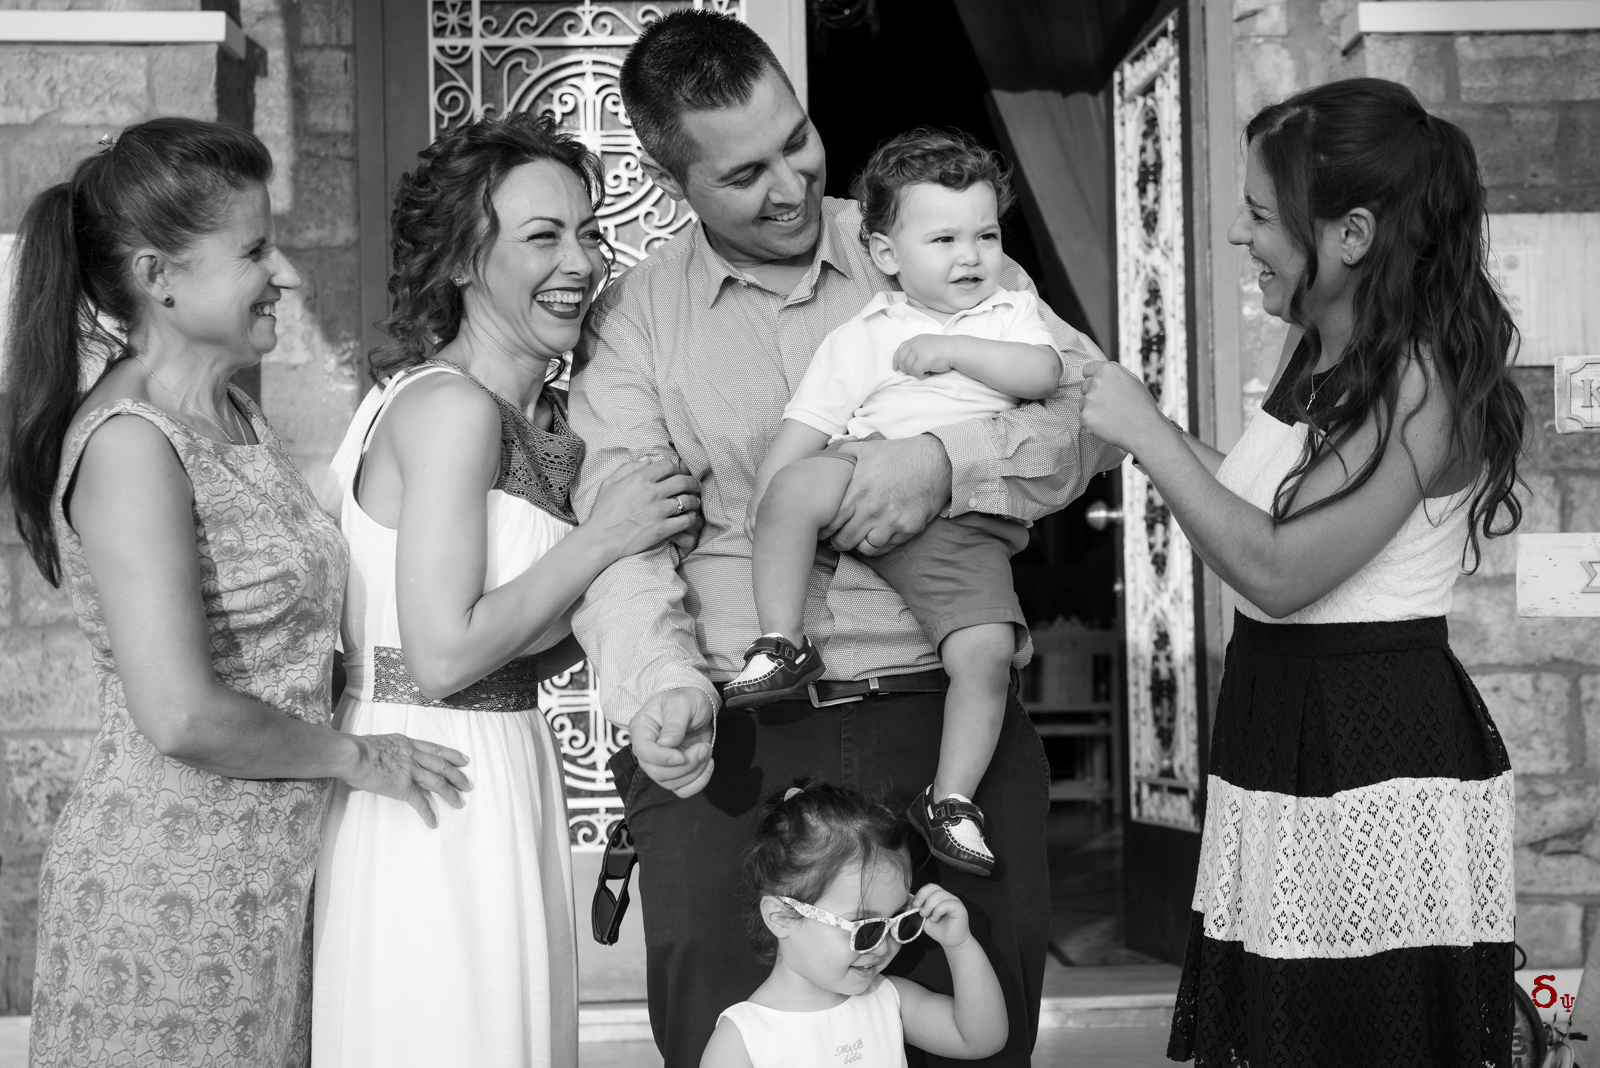 hugs and love family christening photoshooting black and white showered with support and joy by family and friends special christening day bw